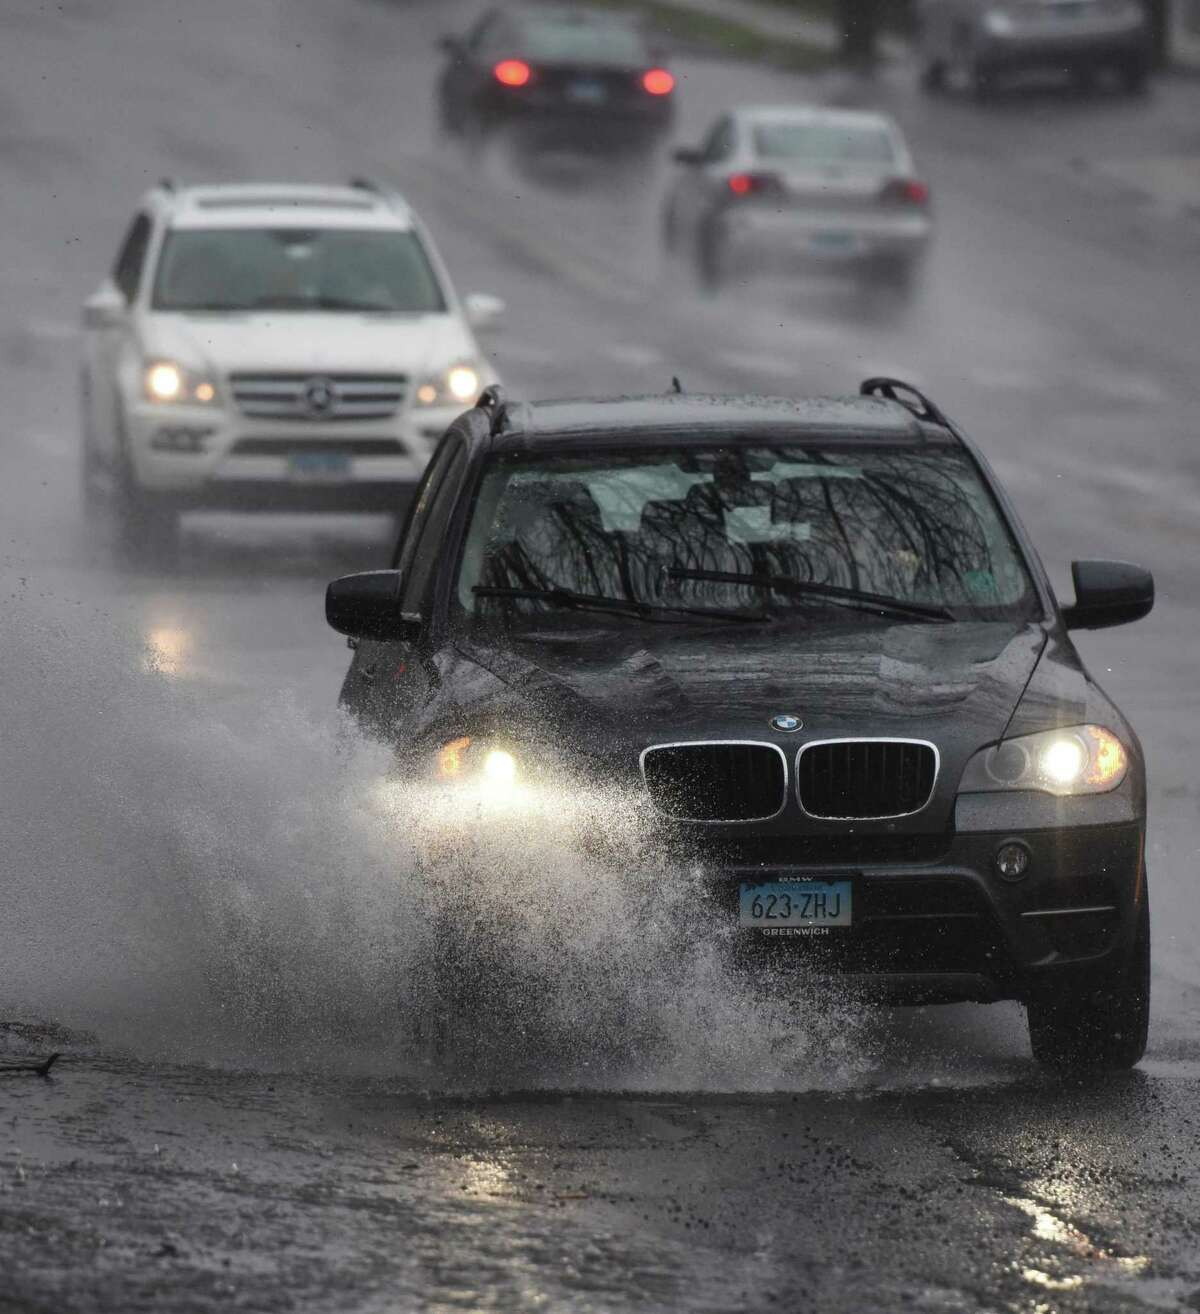 File photo of a vehicle driving through a puddle along Post Road in the Riverside section of Greenwich, Conn., taken on Monday, April 20, 2015.